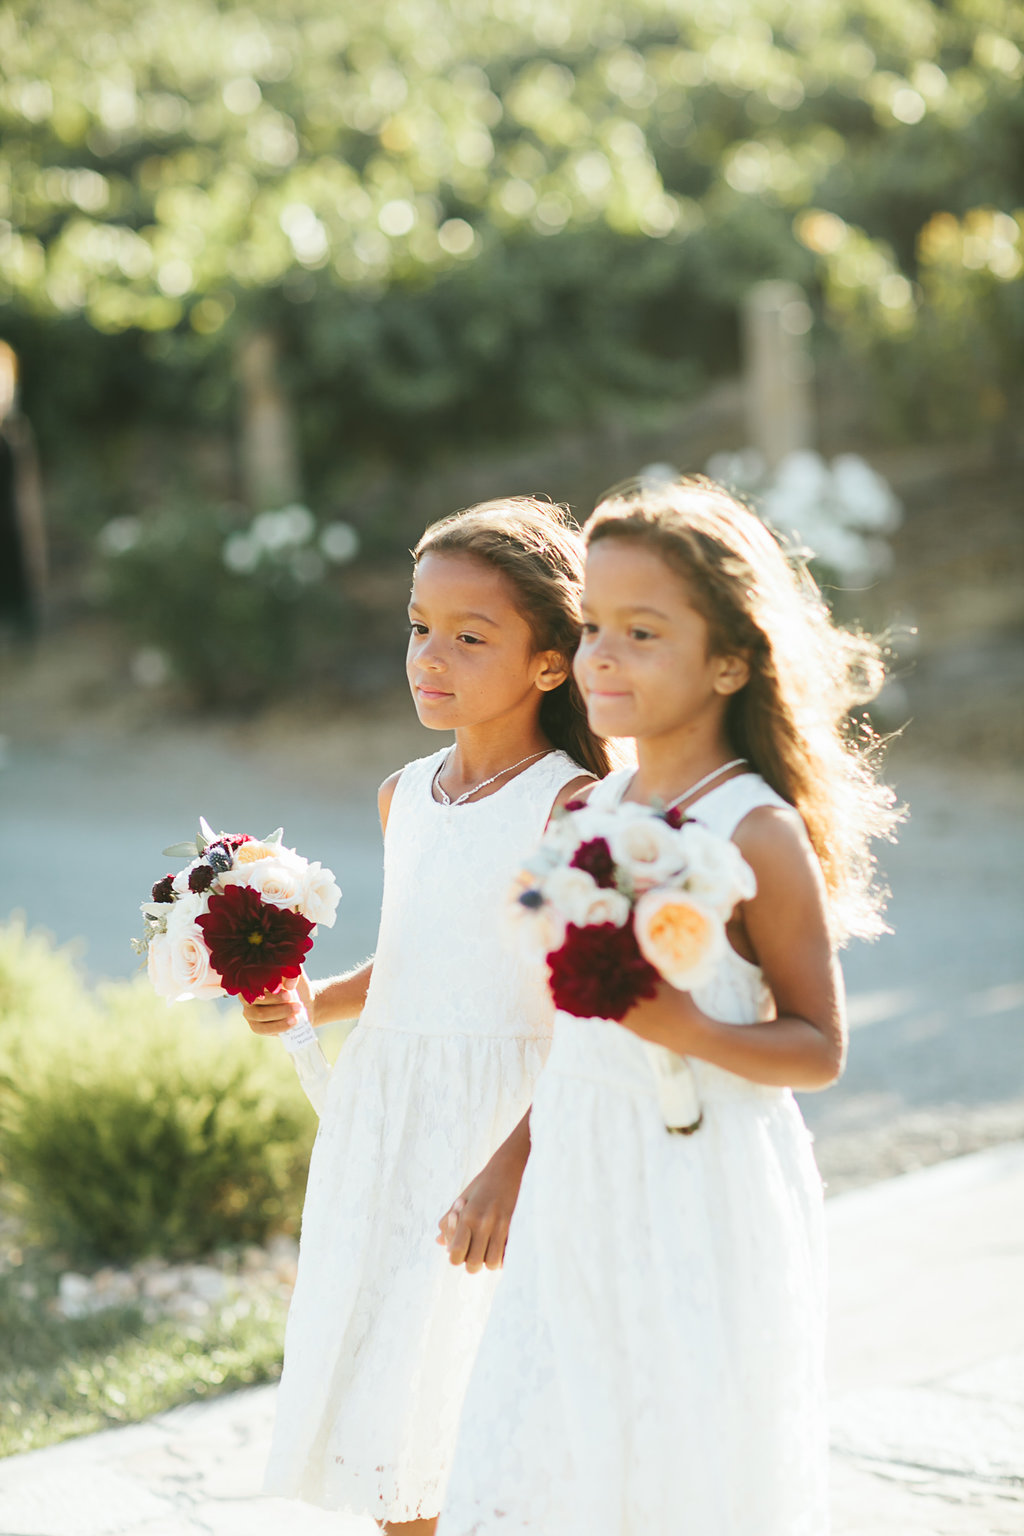 JESSICA+KEVIN-WEDDING17_WEB-355.jpg